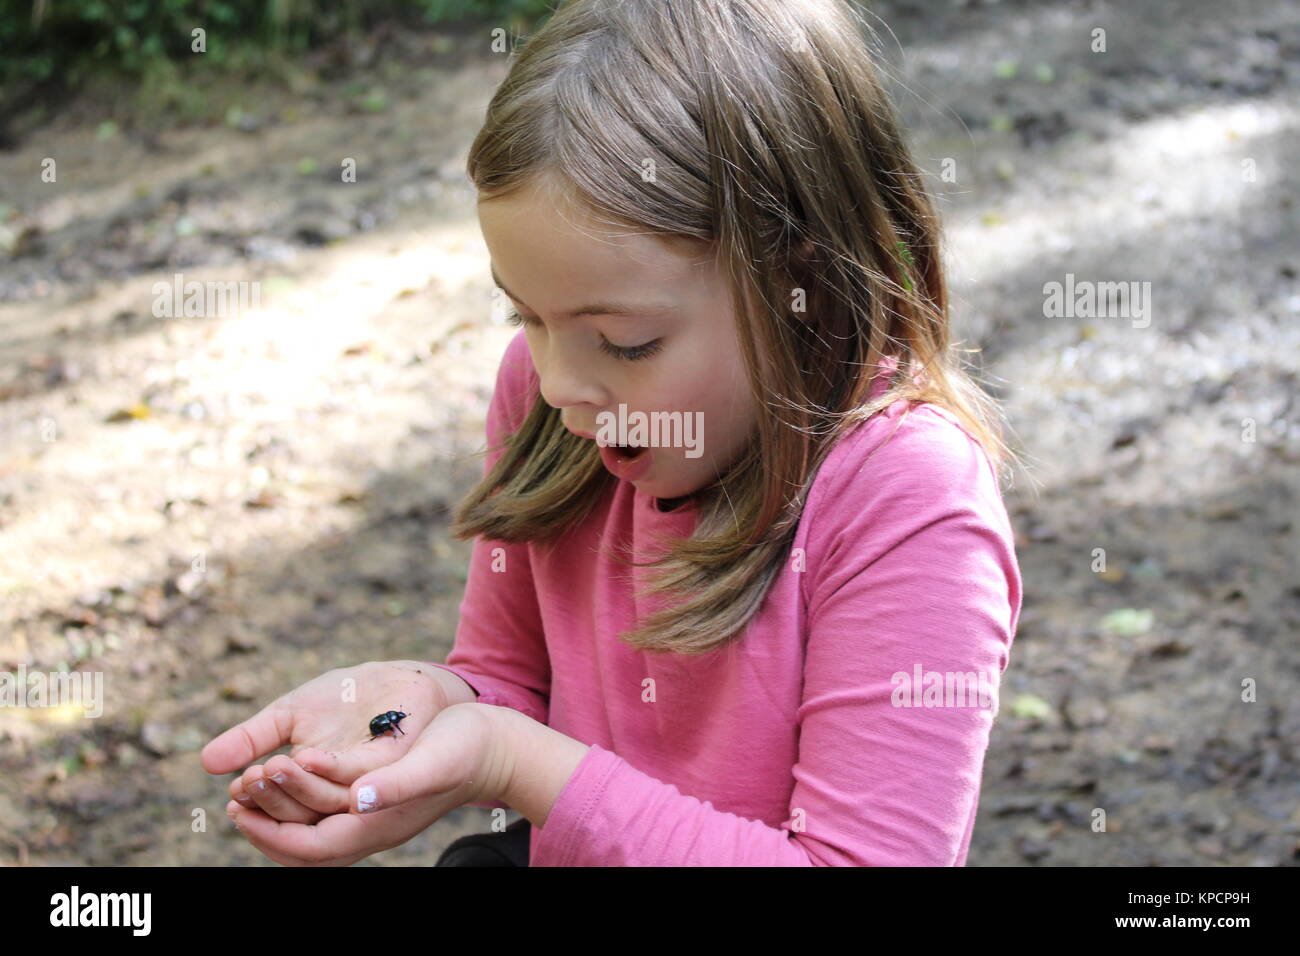 girl holding a beetle - Stock Image